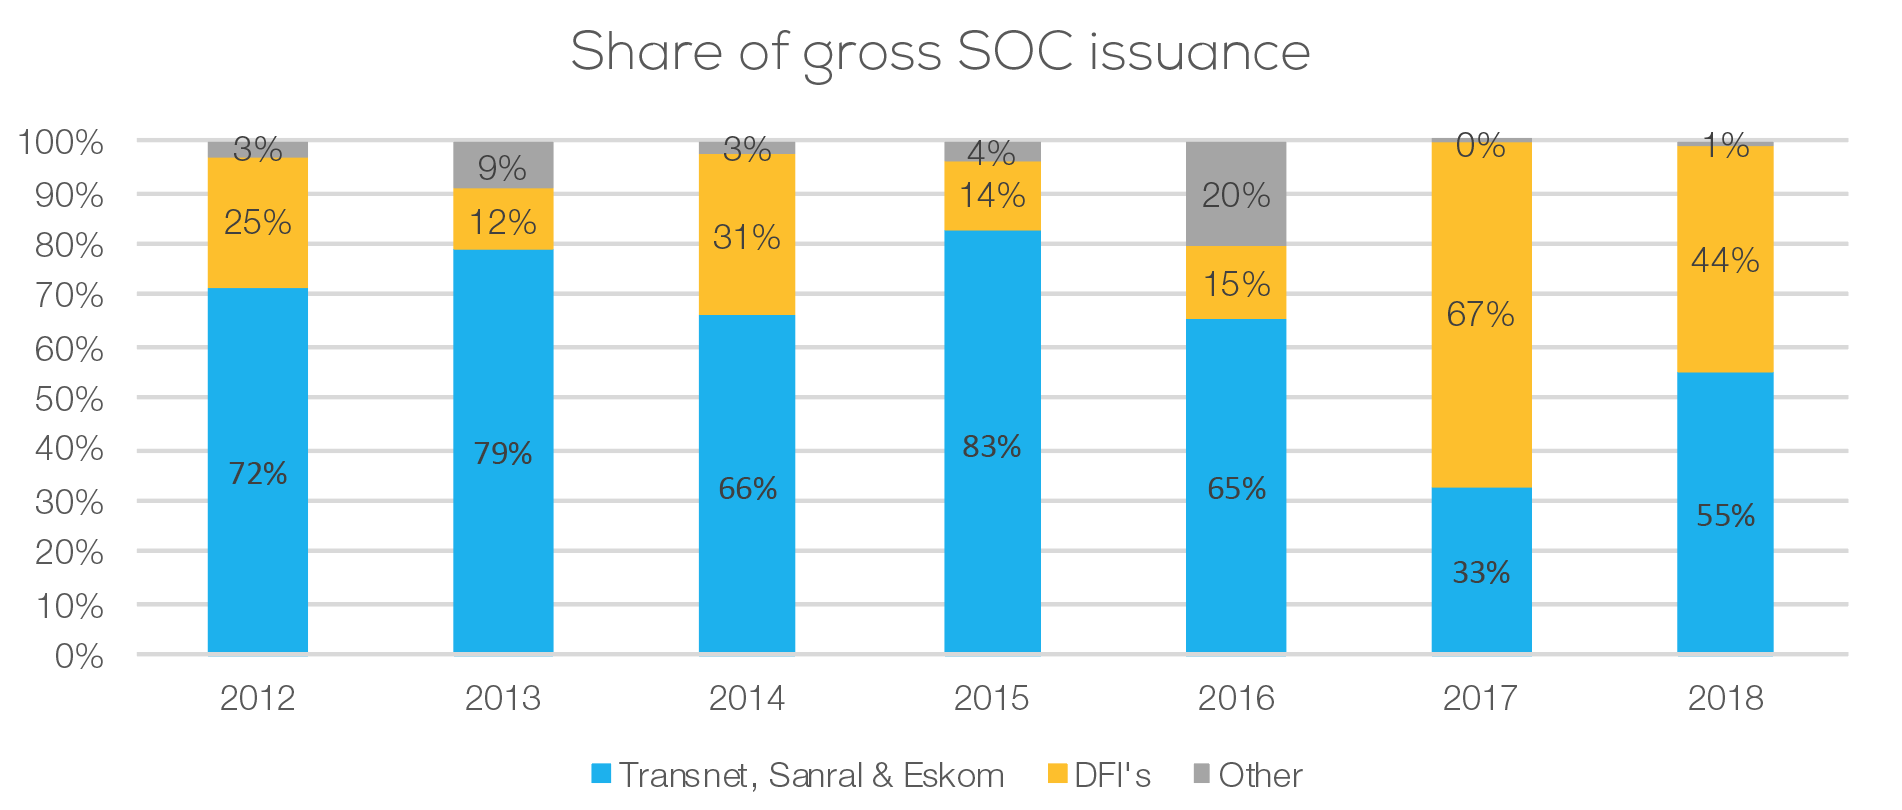 Share of gross SOC issuance